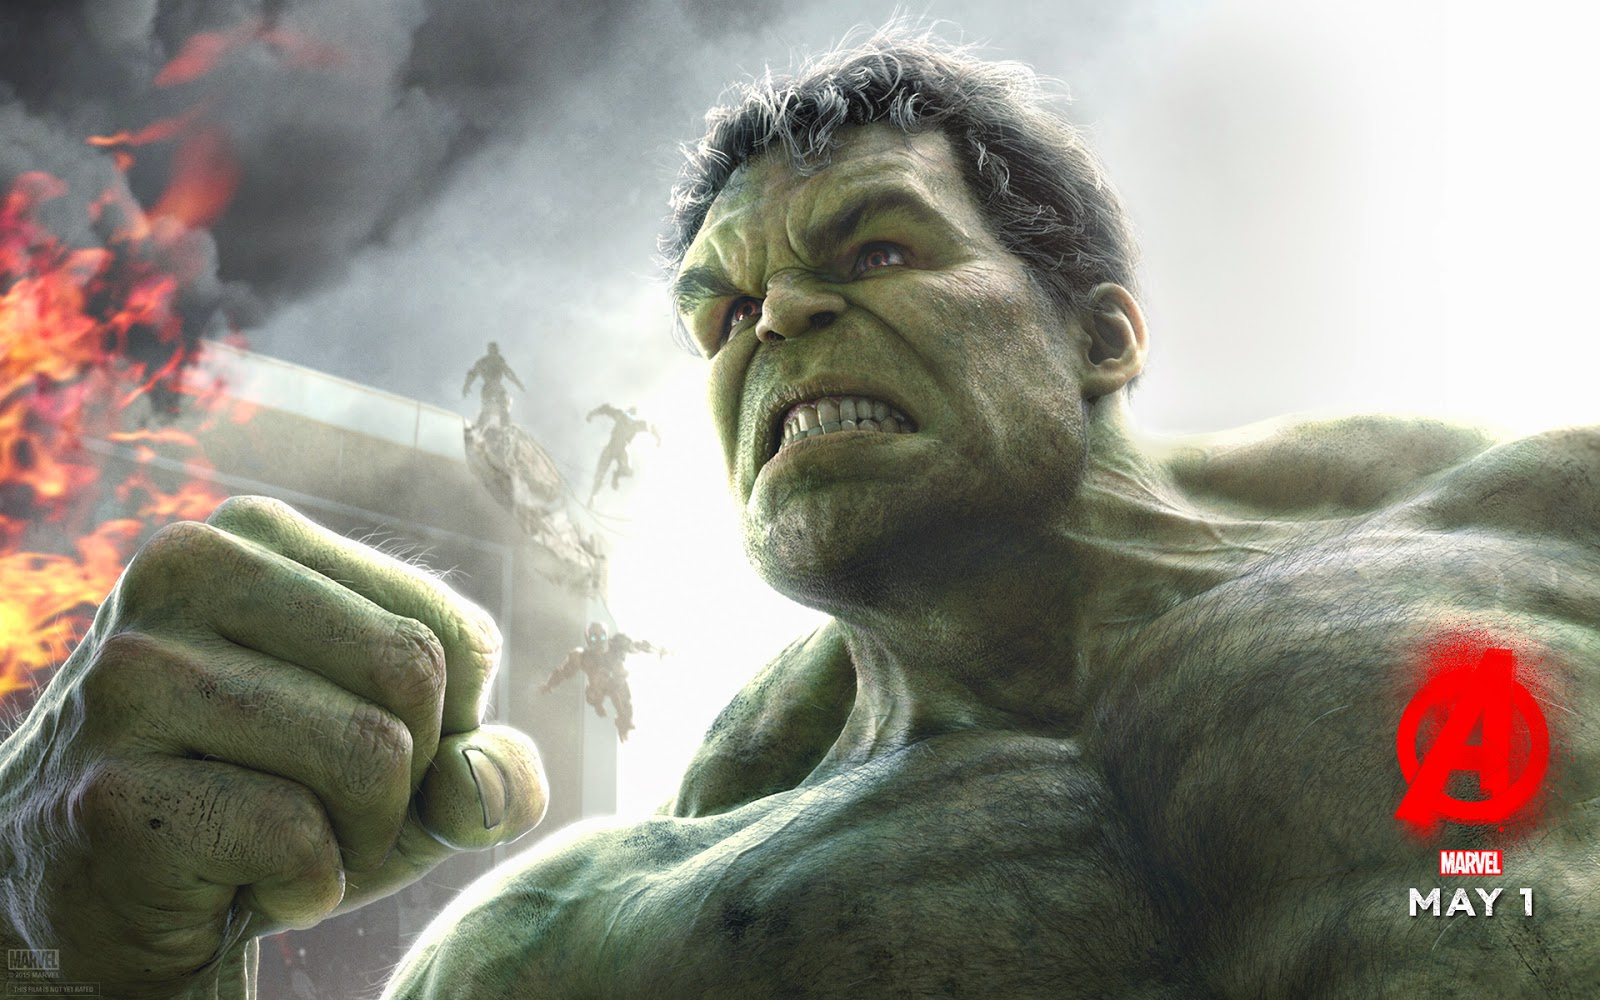 The Incredible Hulk Hd Wallpaper Avengers Age Of Ultron 2015 Wallpaper Kfzoom